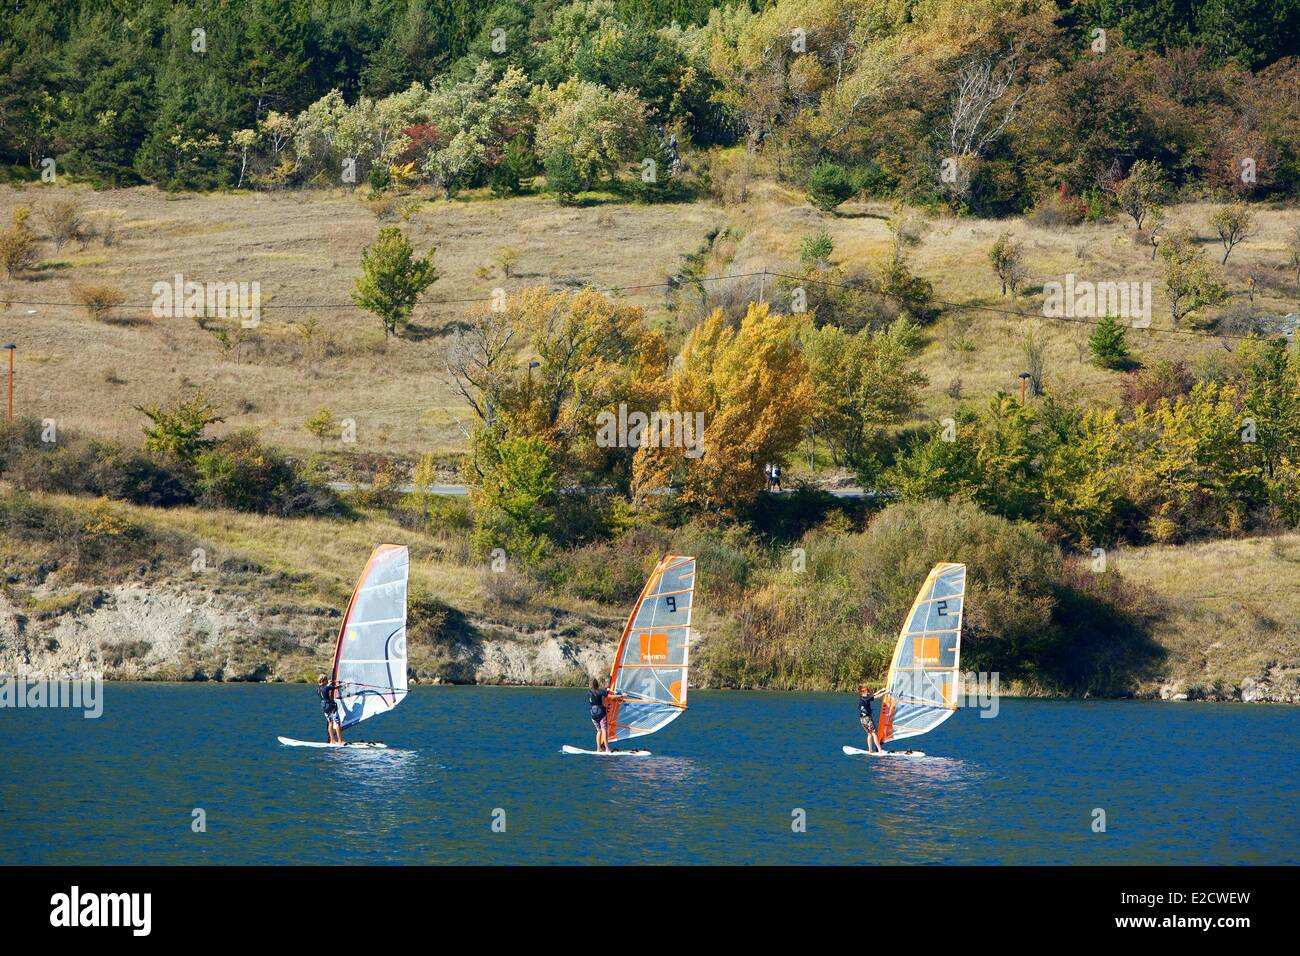 France Hautes Alpes Embrun water base and recreational windsurfing - Stock Image